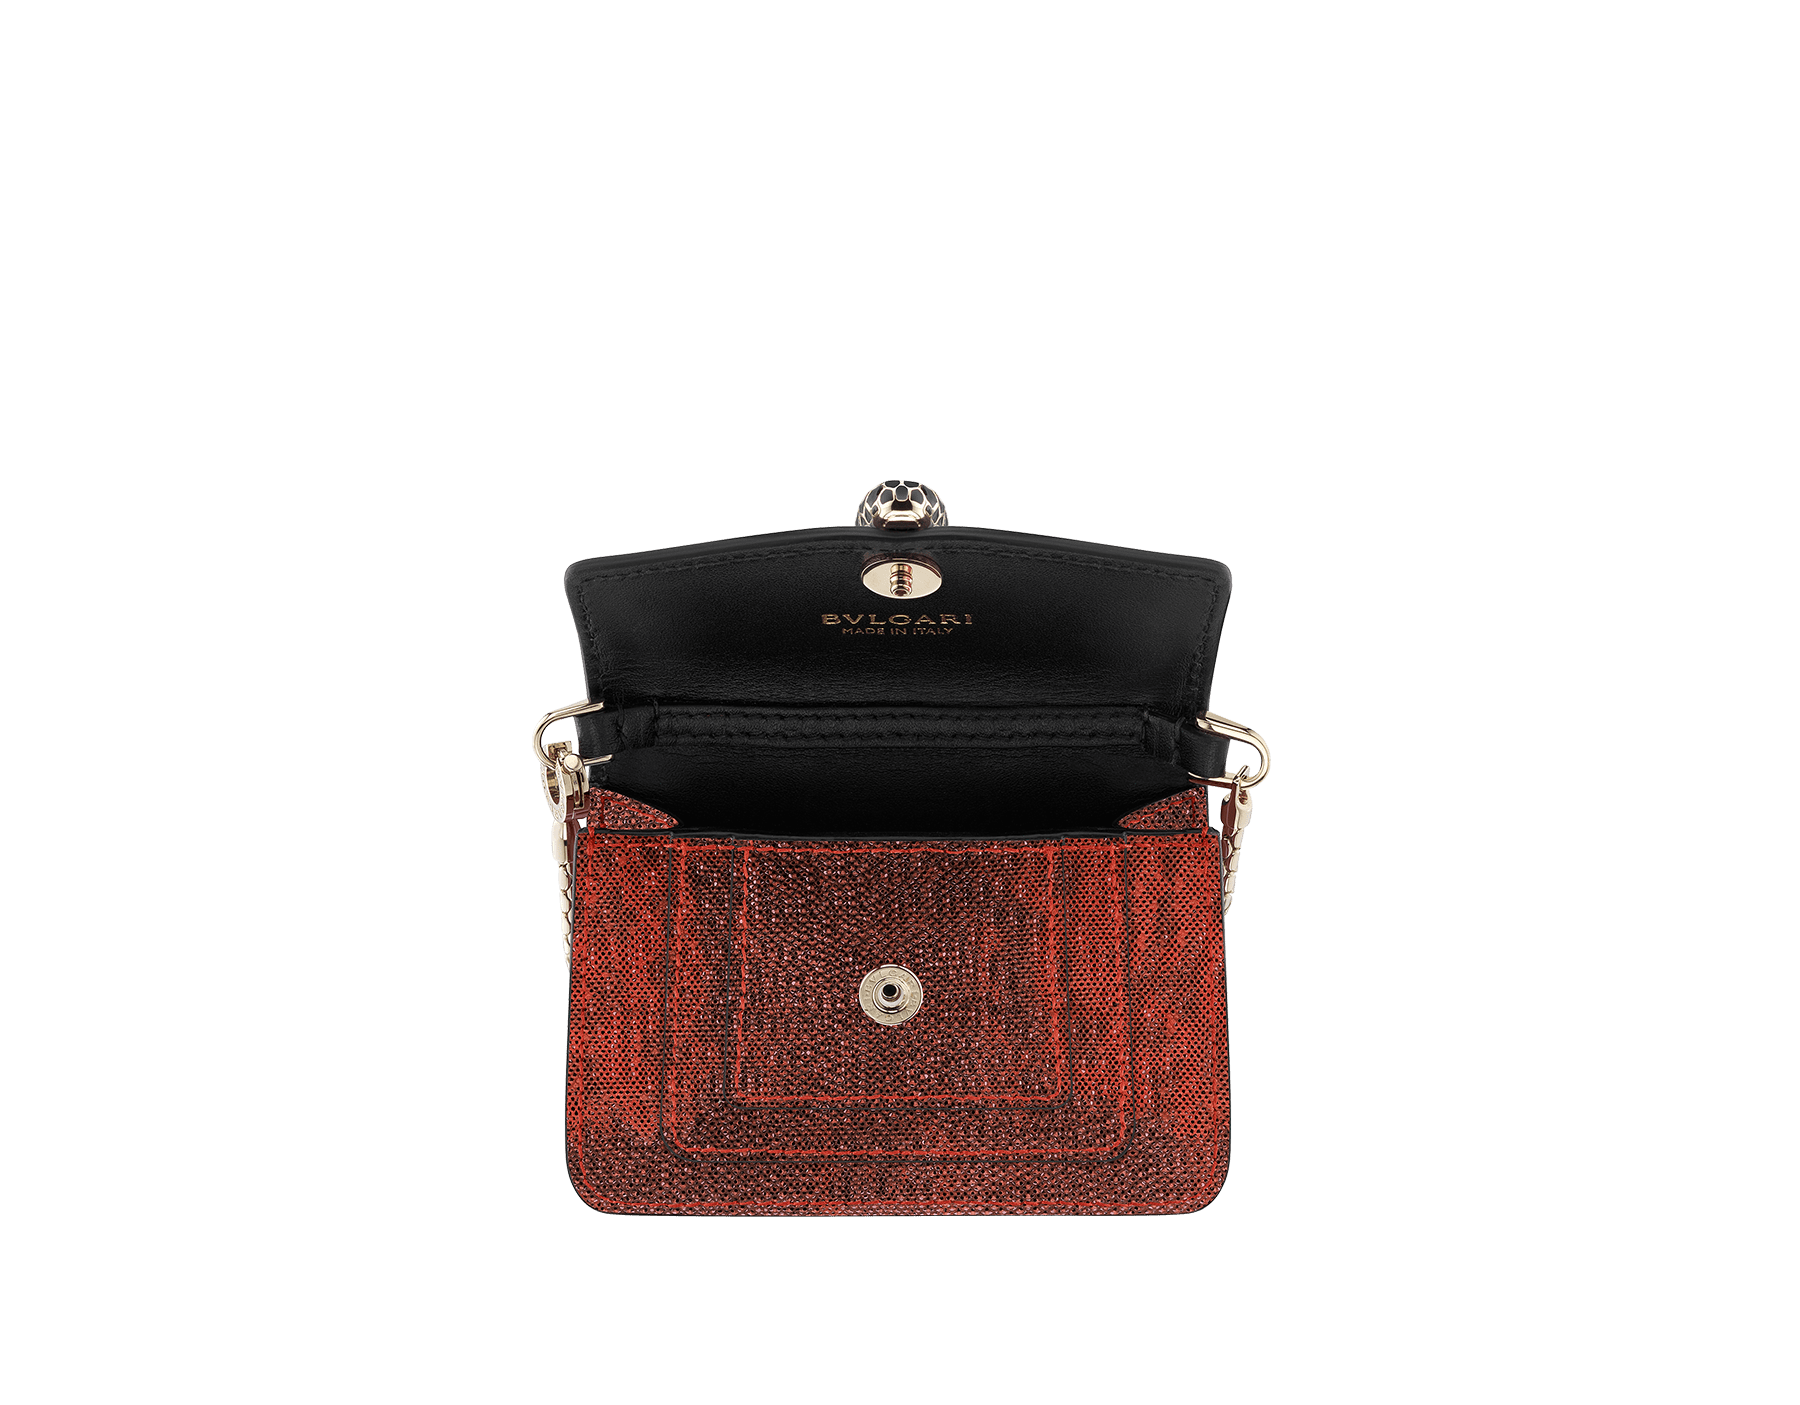 Bag charm Serpenti Forever miniature in ruby red metallic karung skin, with black calf leather lining. Iconic brass light gold plated snakehead stud closure in black and glitter red enamel, with black enamel eyes 287433 image 2